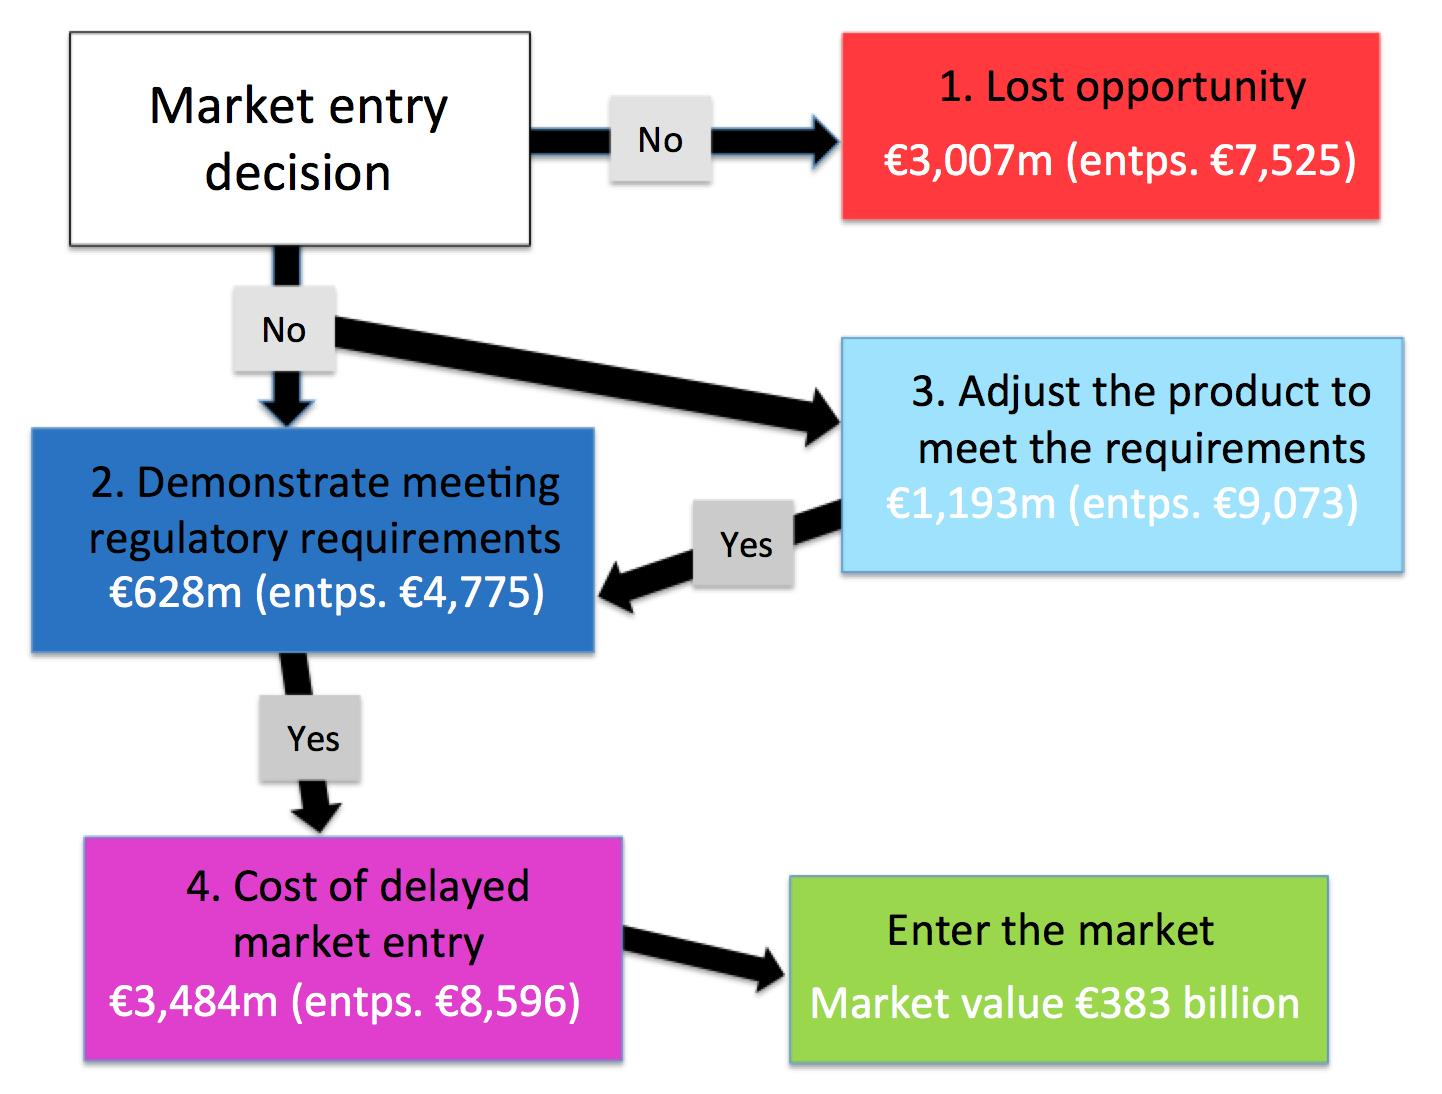 Eur Lex 52017sc0471 It 4 Channel Speaker Wiring Diagram Ricerche Correlate A This Represents The Route That Enterprises Can Follow When Deciding Not To Export Or Entering Another Eu Member State Market